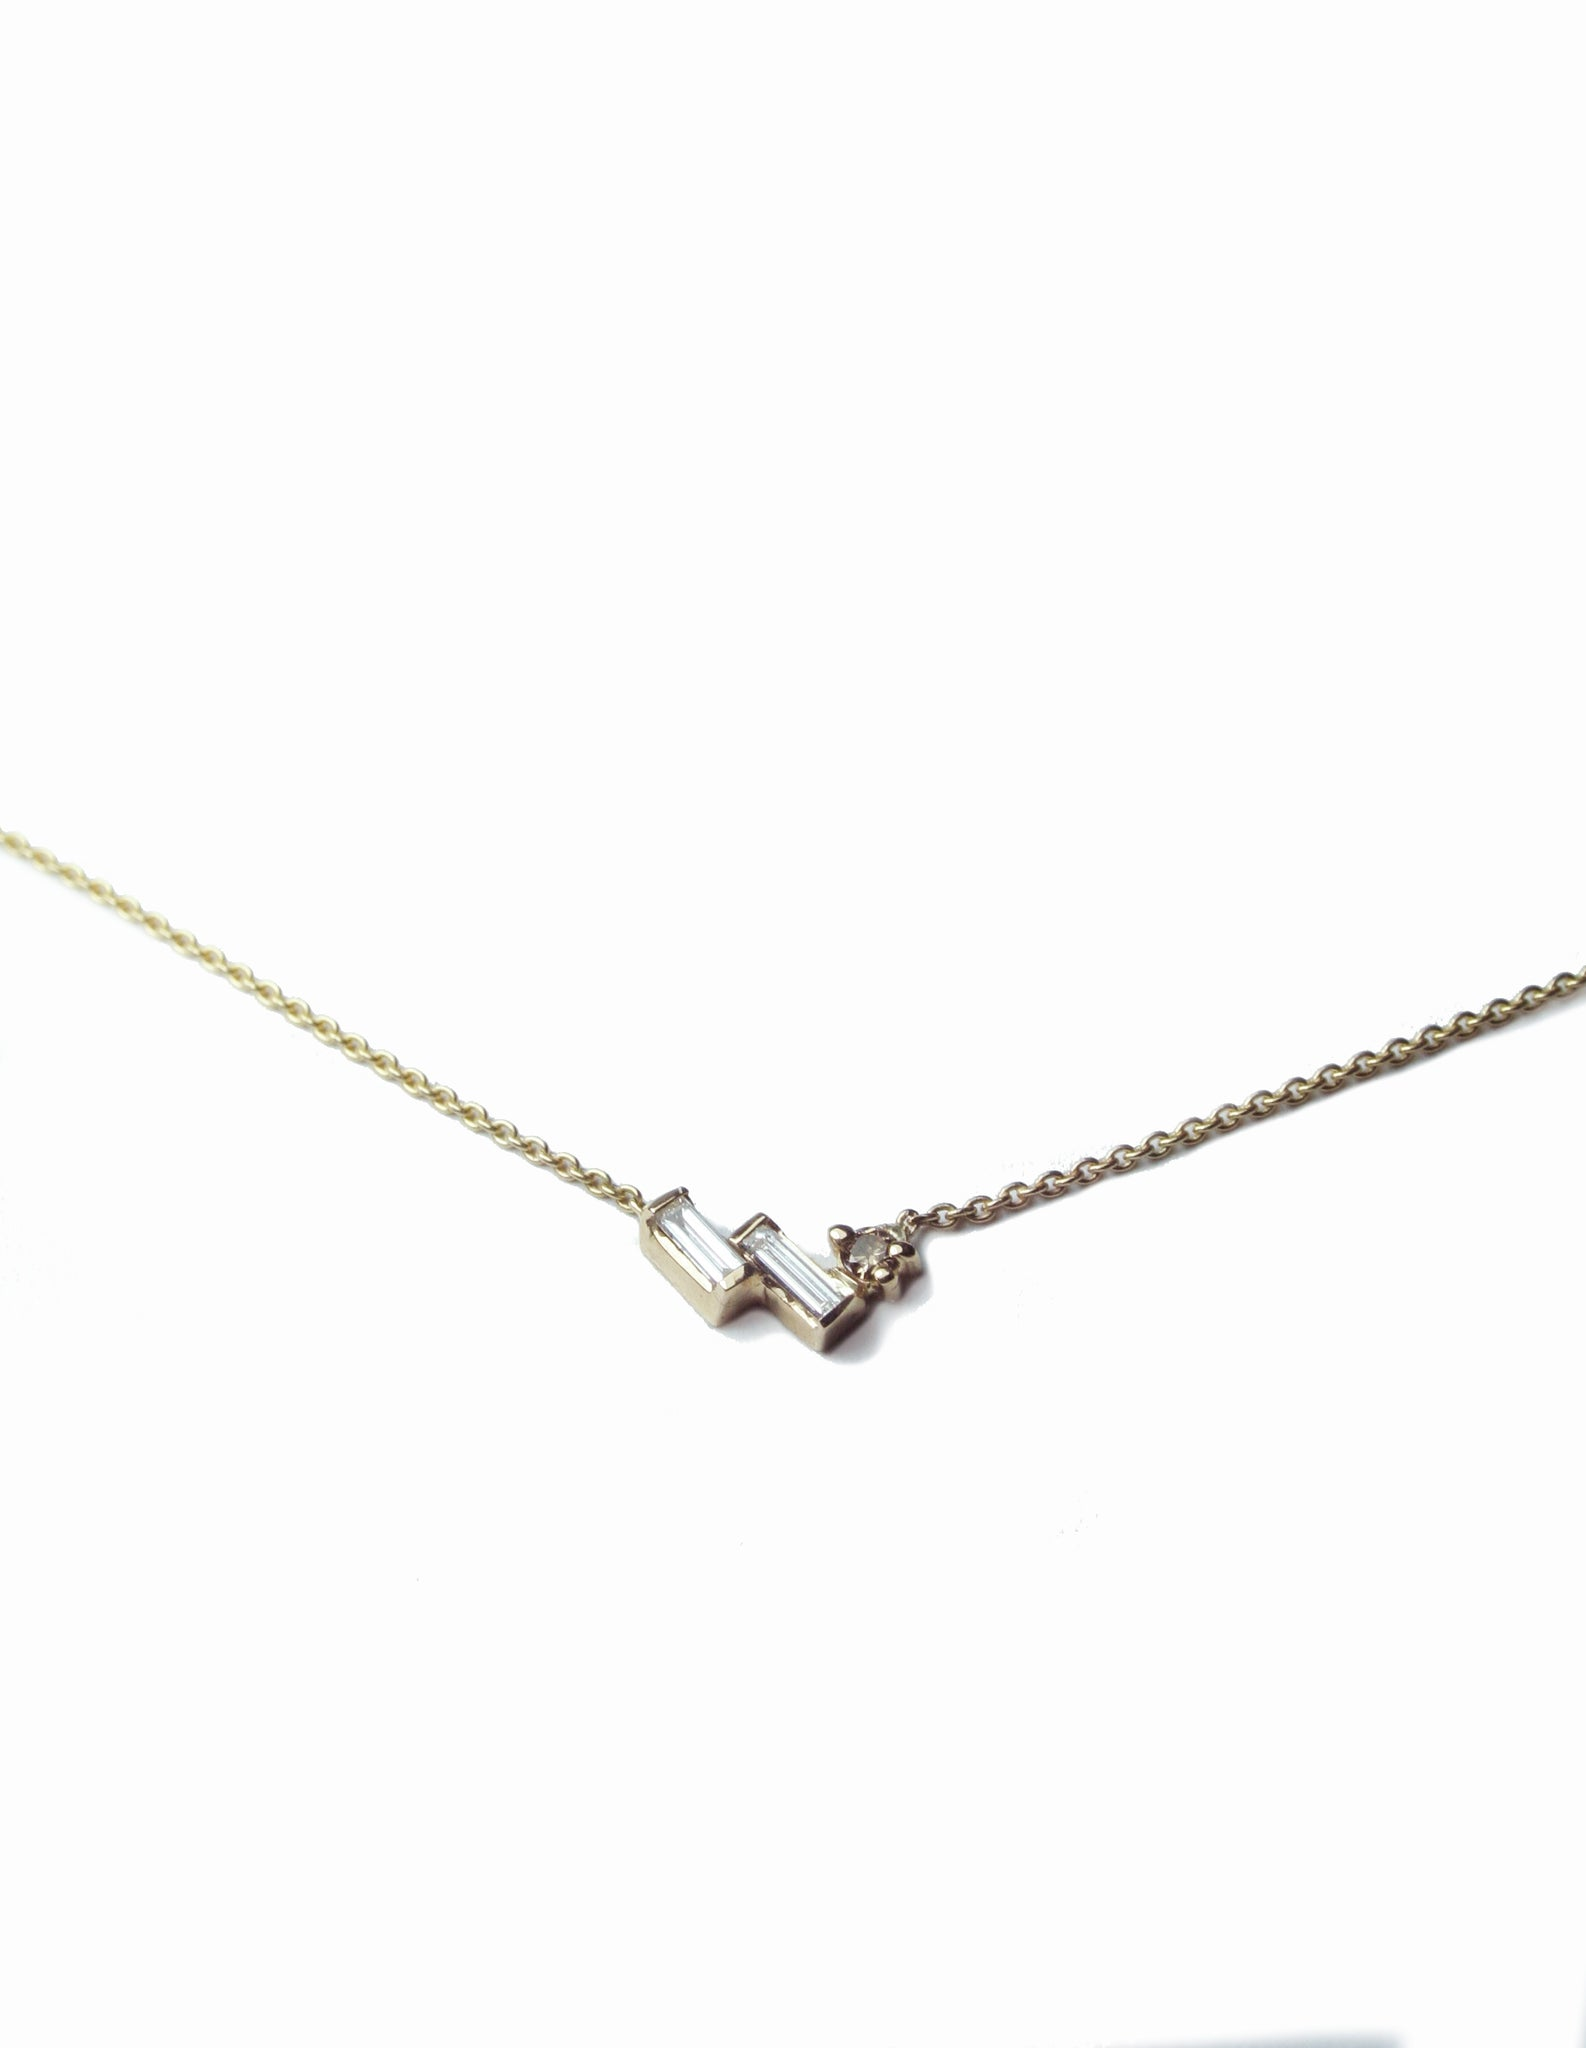 Asymmetric Baguette Diamond Necklace, Necklace, Macha Studio, Brooklyn NYC